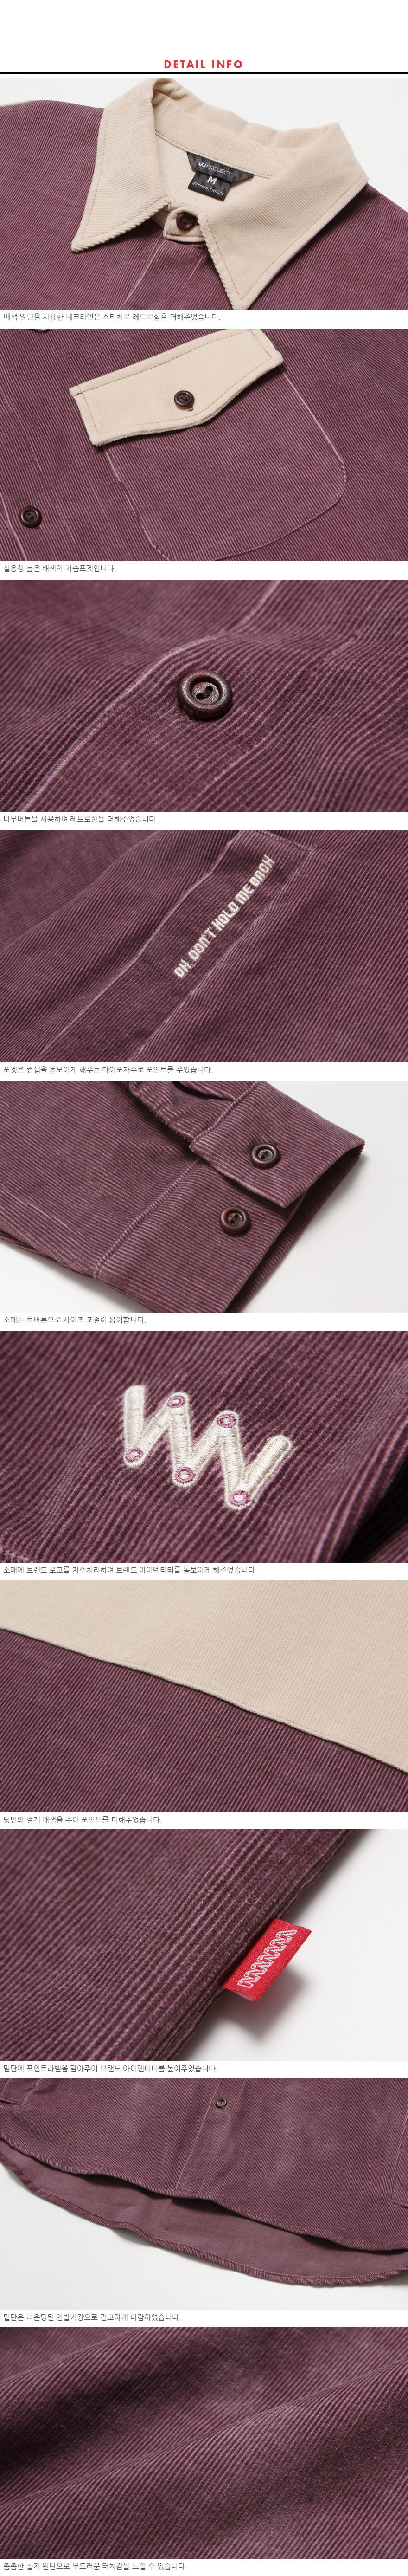 MJLS7195_detail_purple.jpg